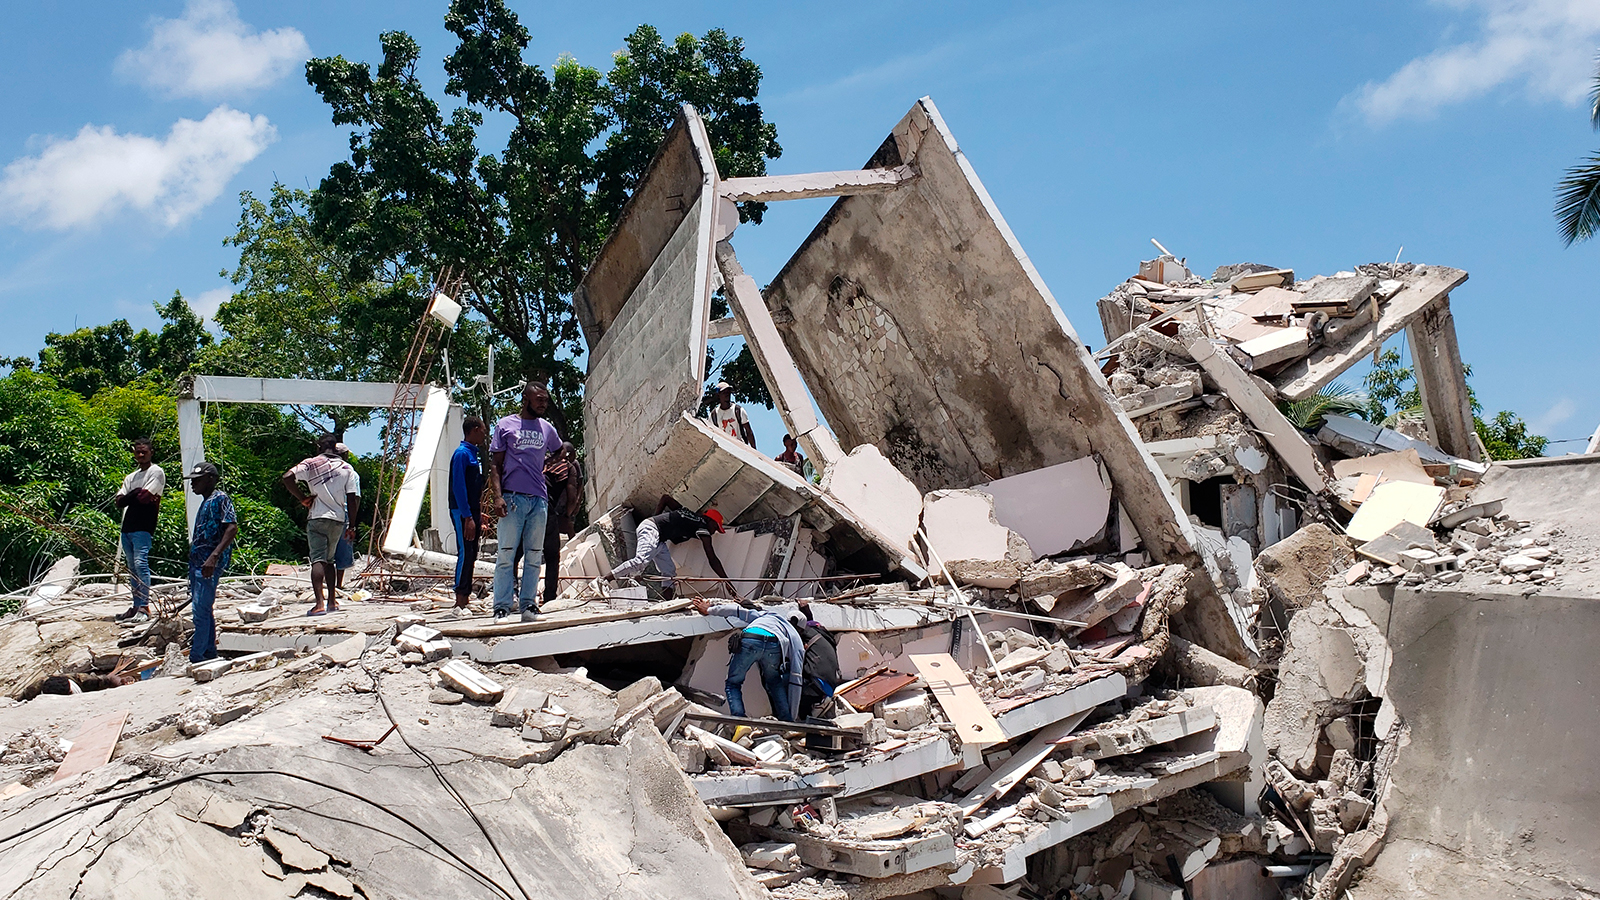 The residence of a Catholic bishop is damaged after the earthquake in Les Cayes, Haiti, on August 14.